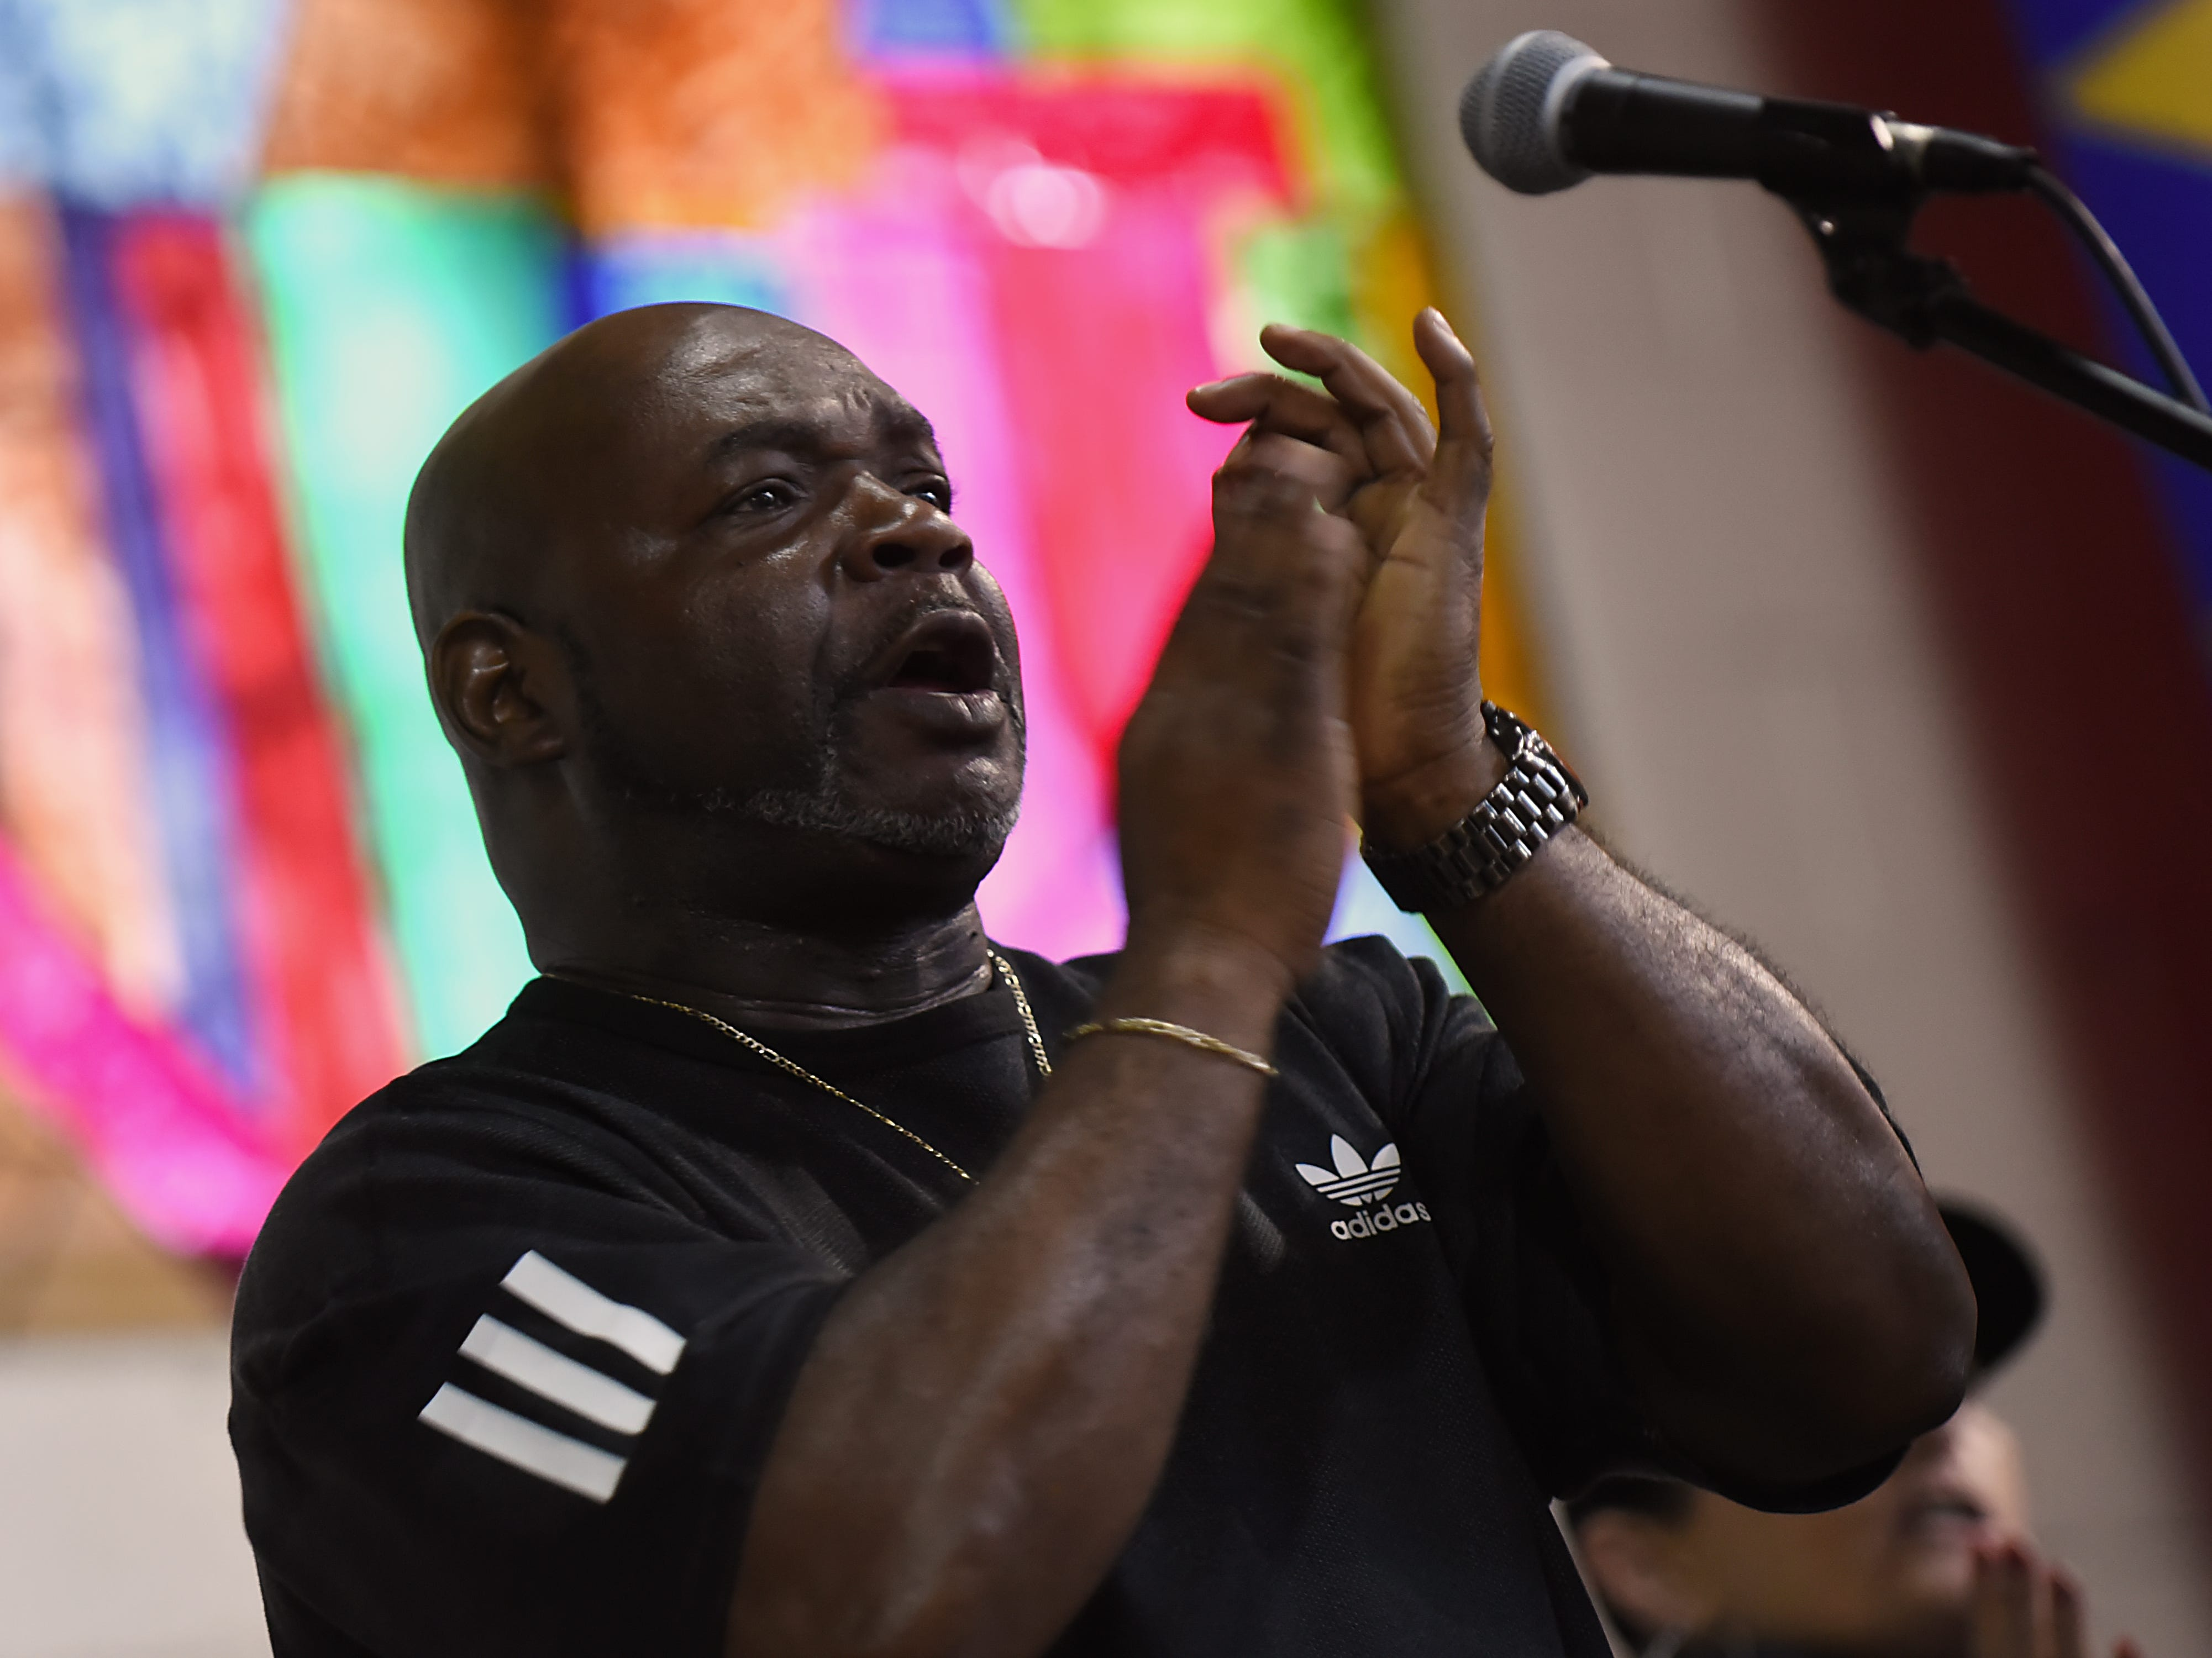 Irv DeBois sings in the Straight & Narrow Gospel Choir during a rehearsal in Paterson on Saturday, Oct. 13, 2018.